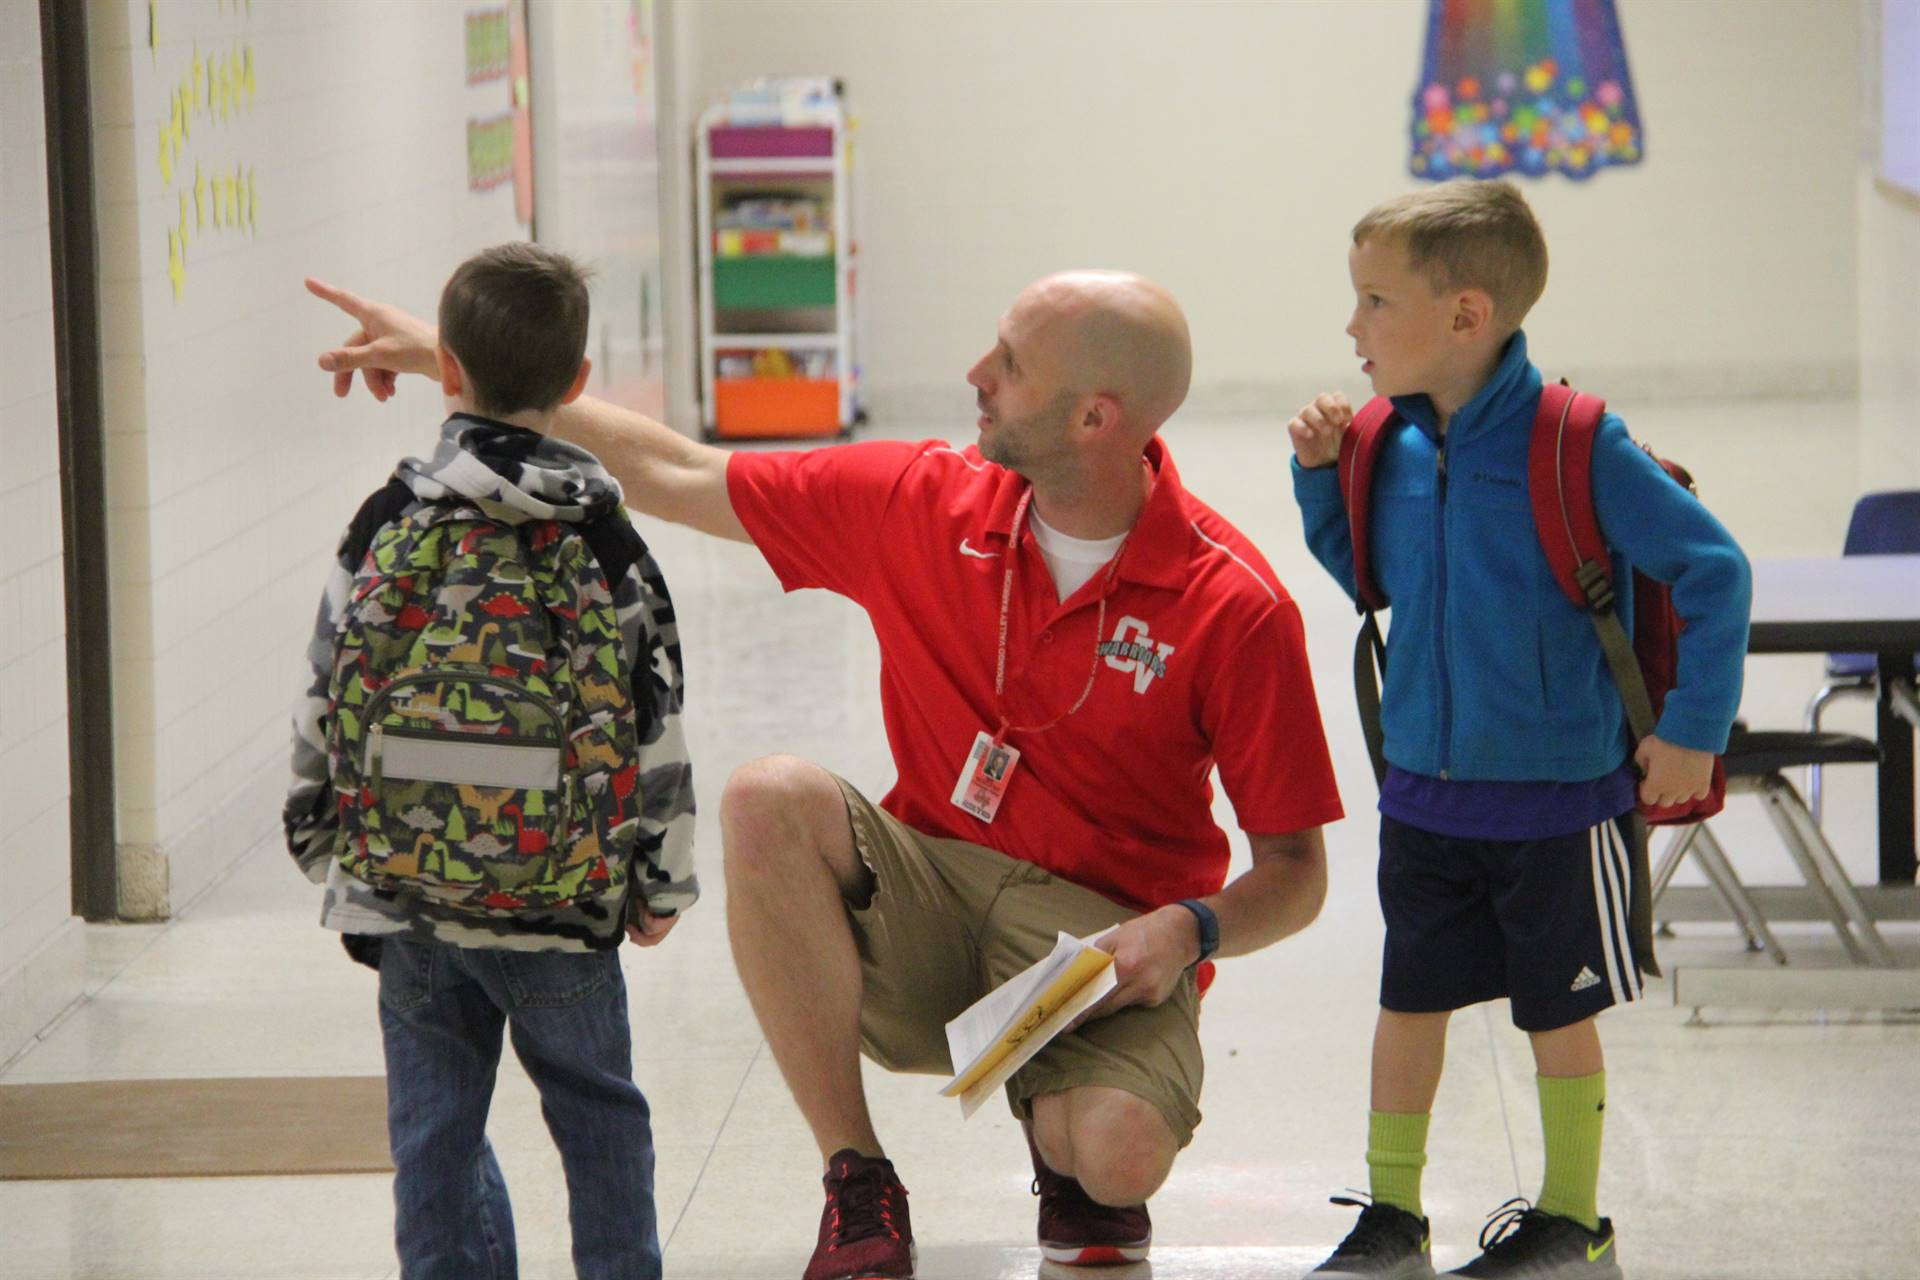 mister novotny helps students on first day of school